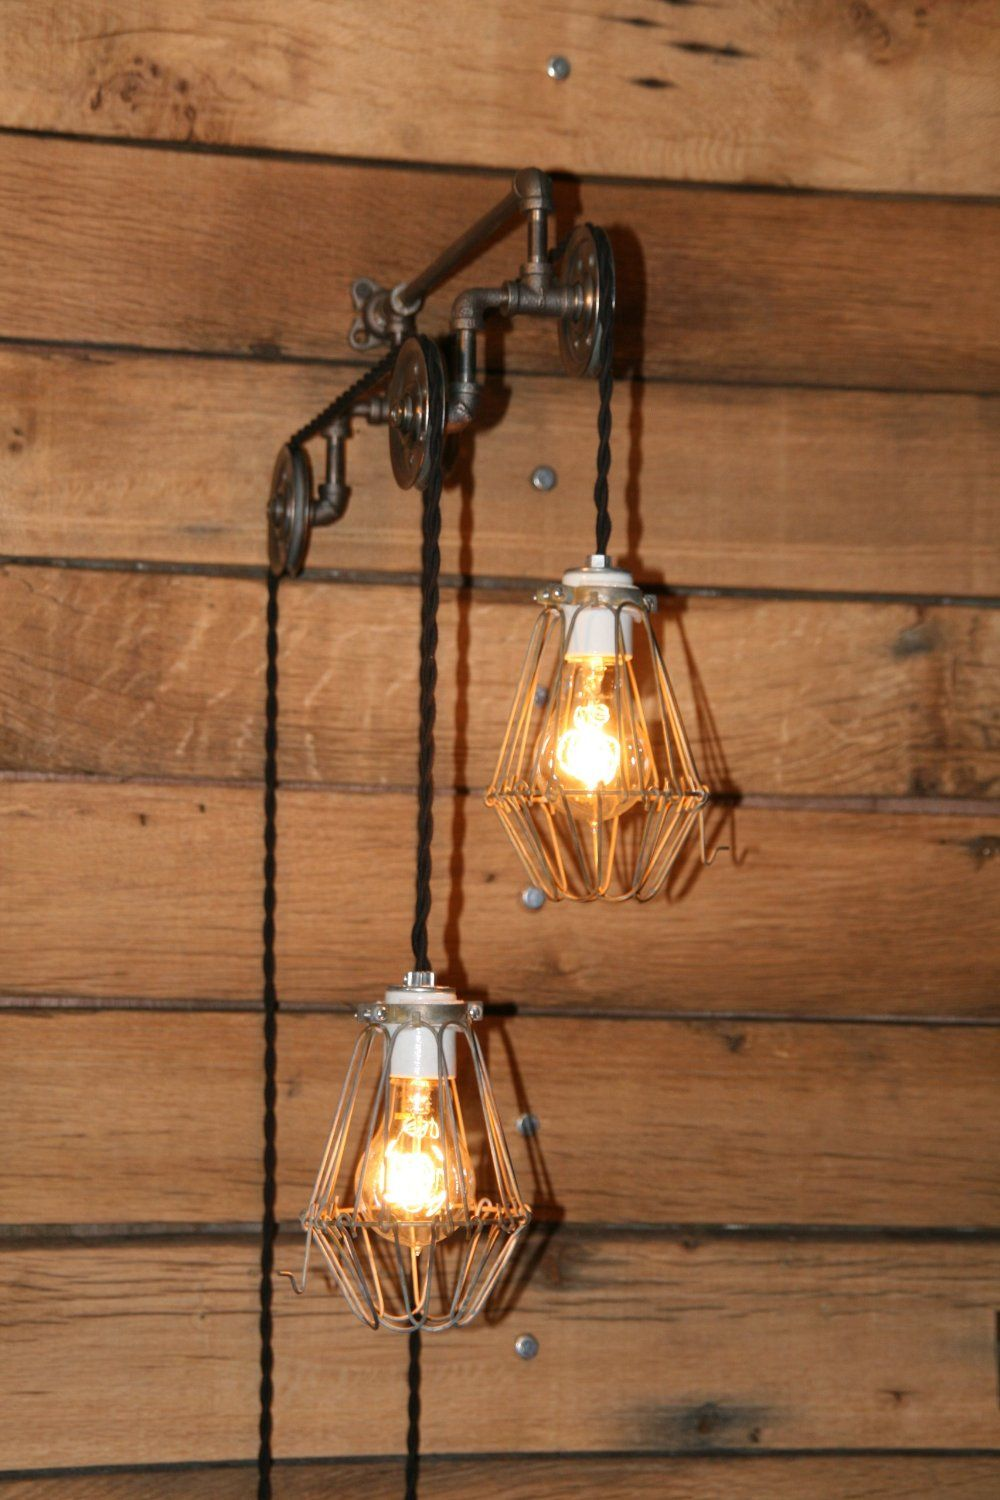 Industrial pulley light wall sconce trolley wall light with industrial pulley light wall sconce trolley wall light with hanging pendant lights pendant lighting edison style bulbs inc aloadofball Image collections